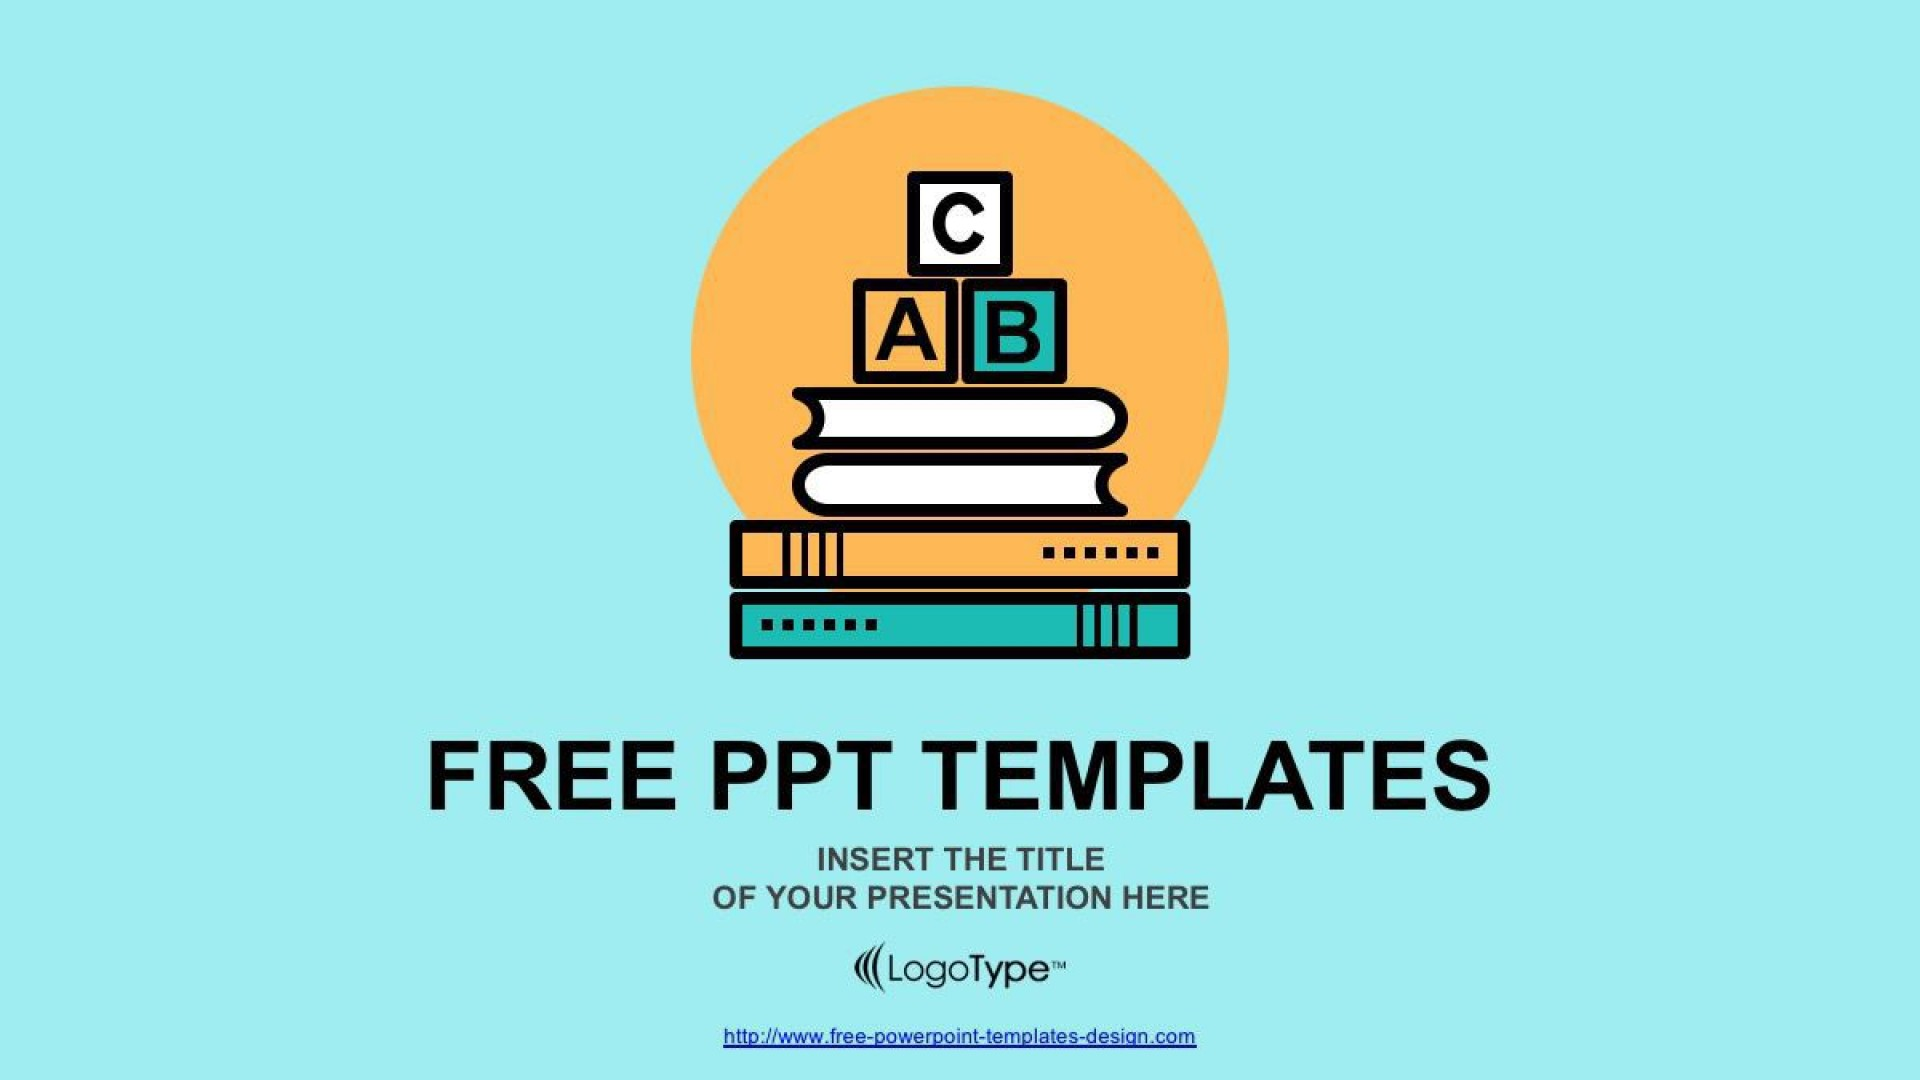 004 Marvelou Free Education Powerpoint Template Example  Templates Physical Download Downloadable For Teacher Design1920